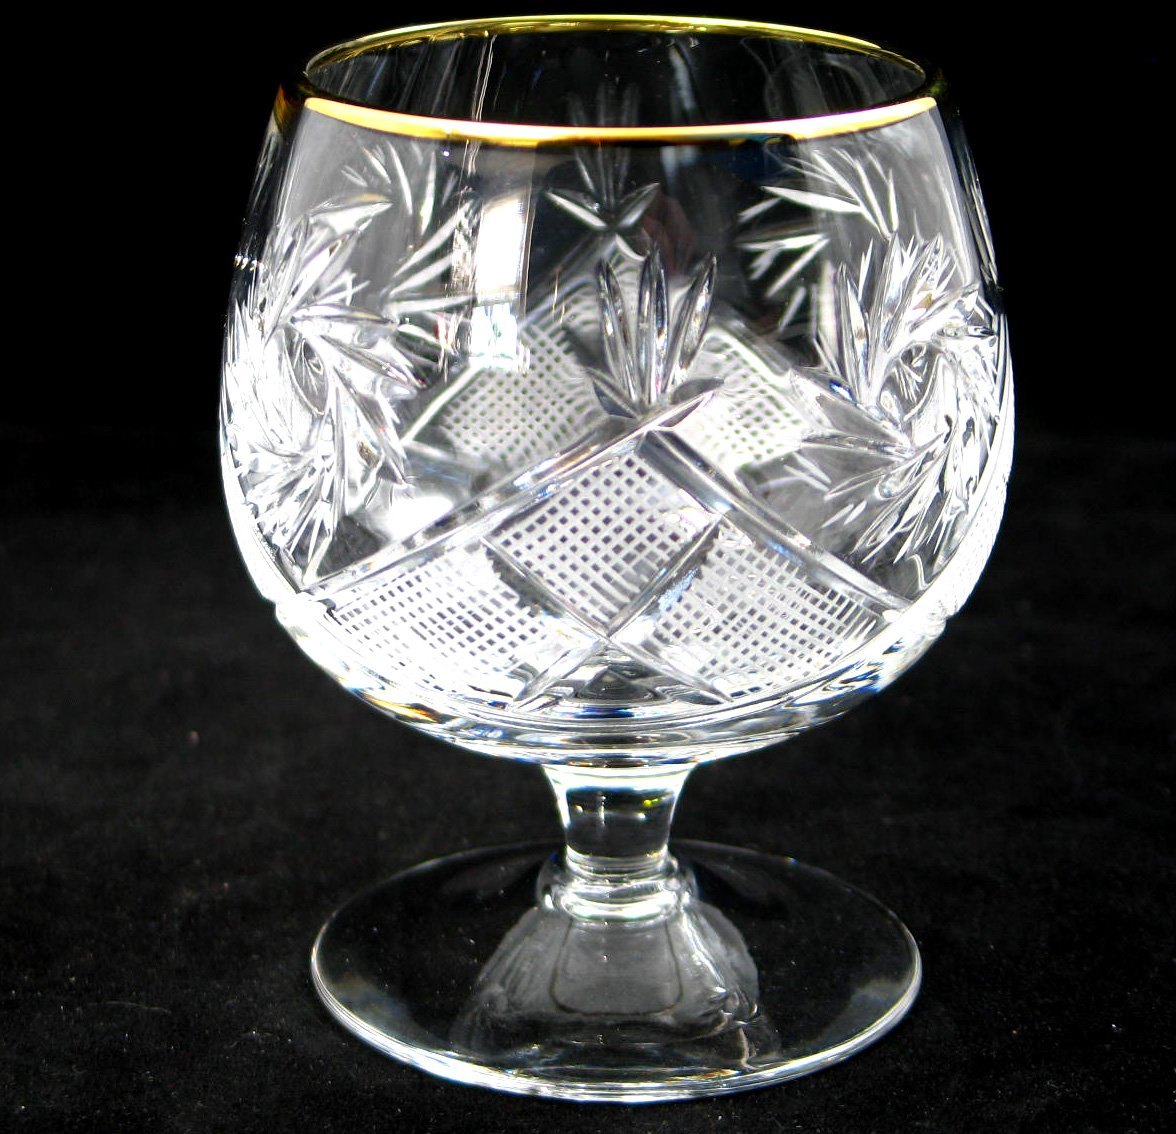 SET of 6 Russian Cut Crystal Cognac Scotch Whiskey Stemmed Snifter Goblet Glass 24K Gold Rimmed 10 Oz. Vodka Liquor Old-fashioned Glassware Hand Made by Neman Crystal (Image #4)